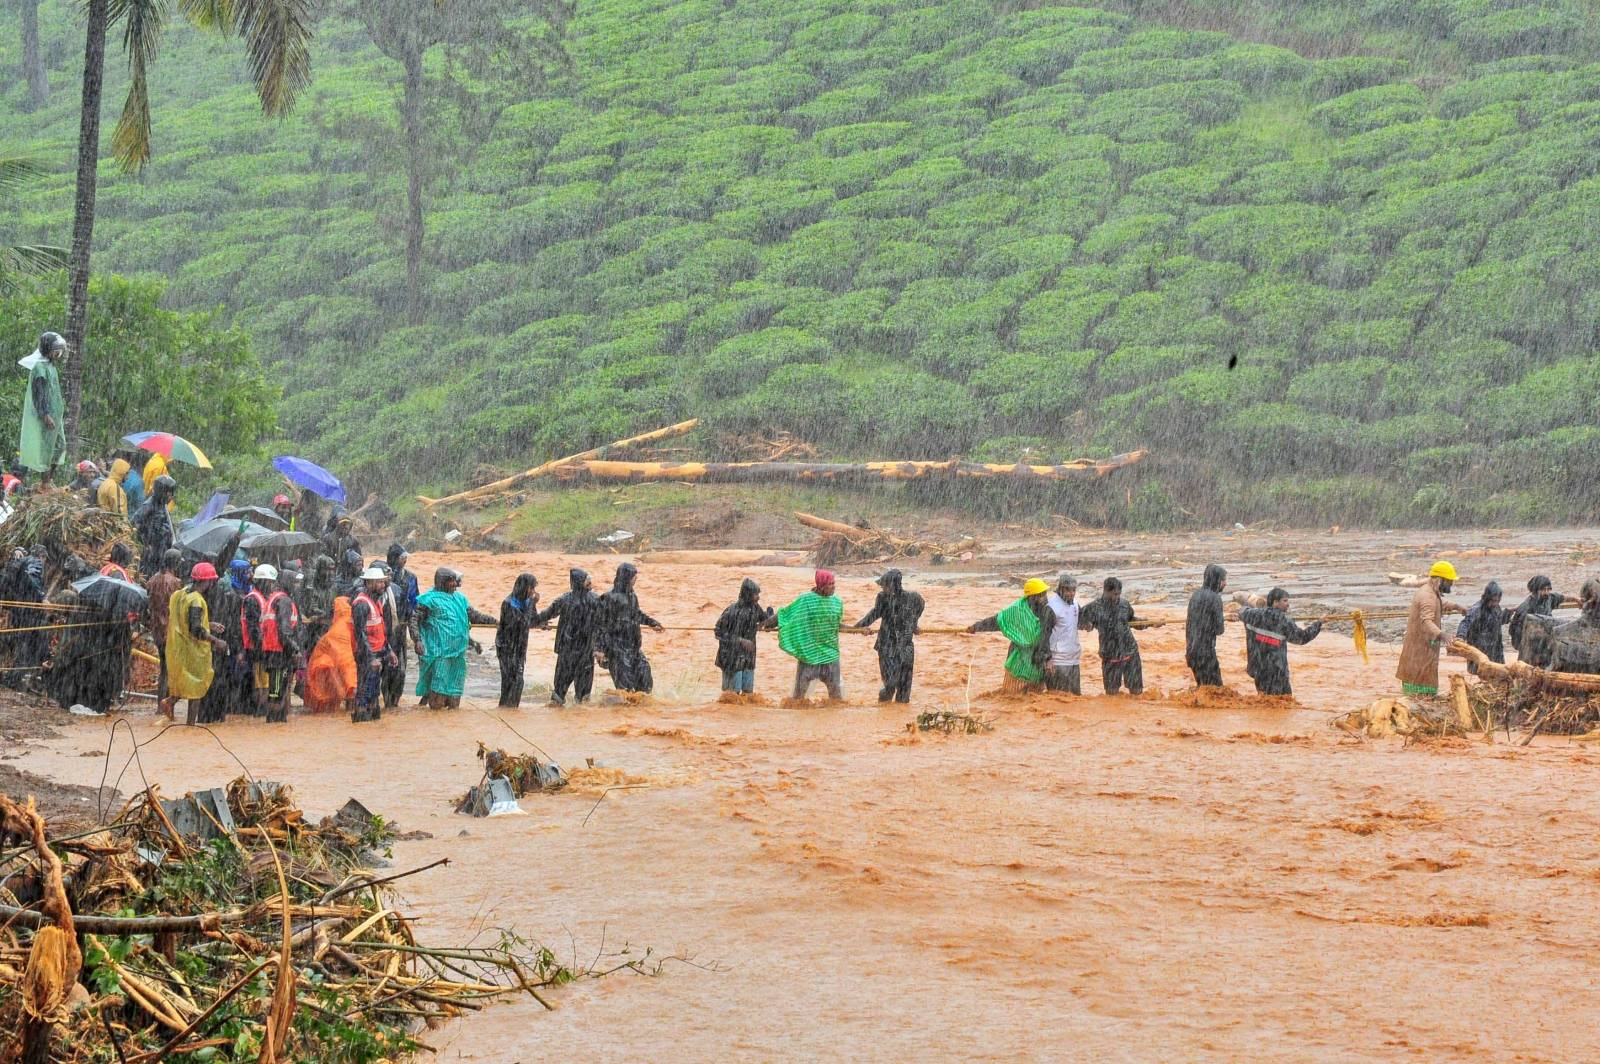 Rescuers help people to cross a flooded area after a landslide caused by torrential monsoon rains in Meppadi in Wayanad